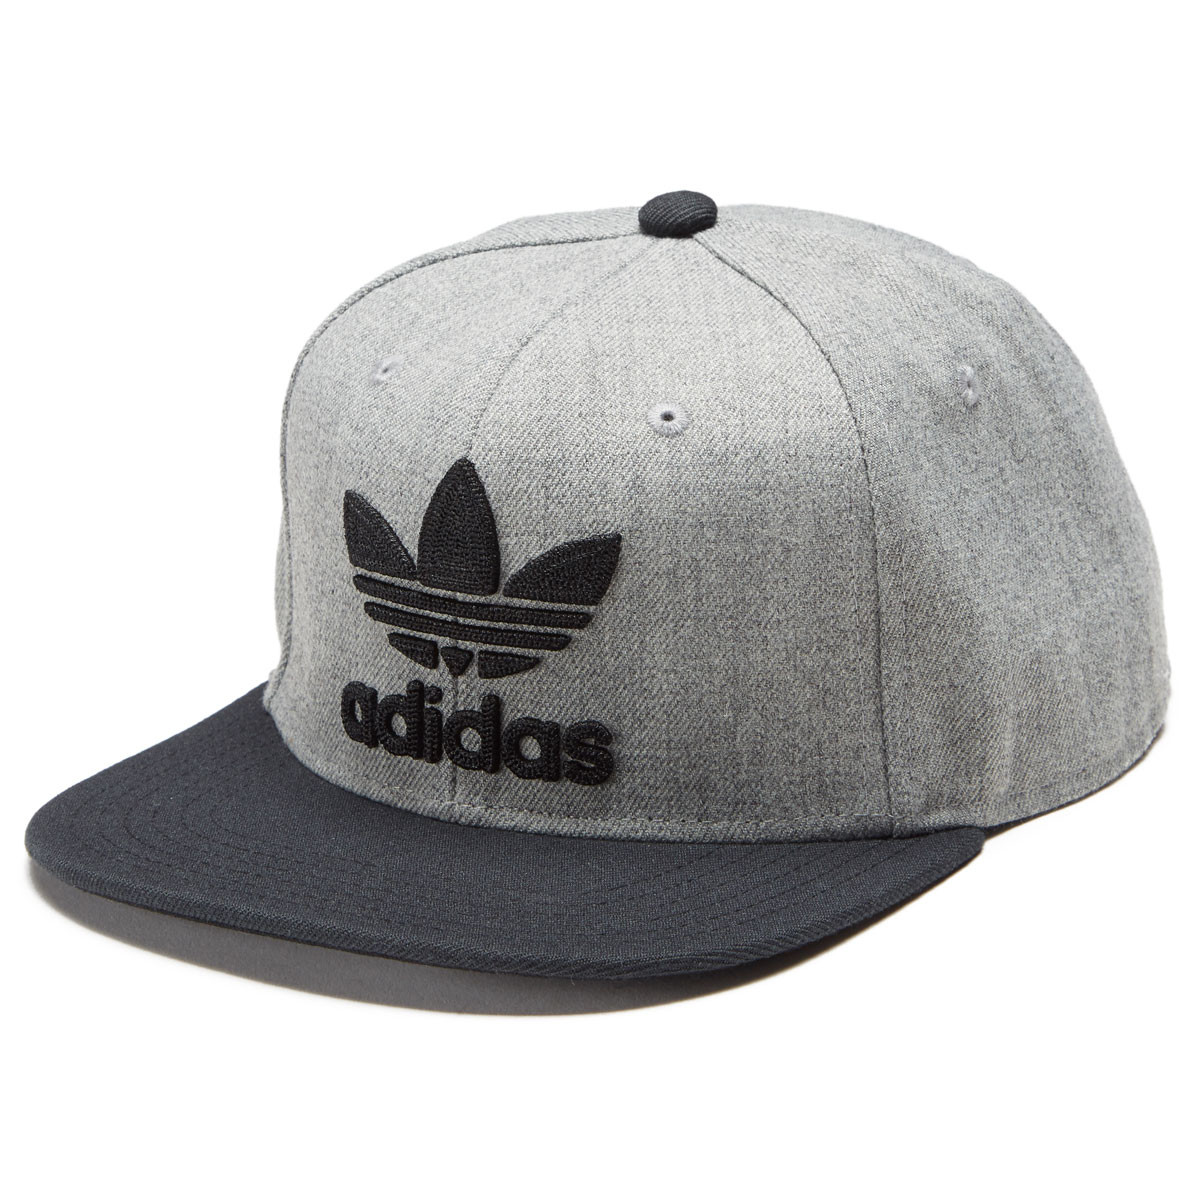 182116a458329 Adidas Men s Originals Trefoil Chain Snapback Hat - Heather Grey Black